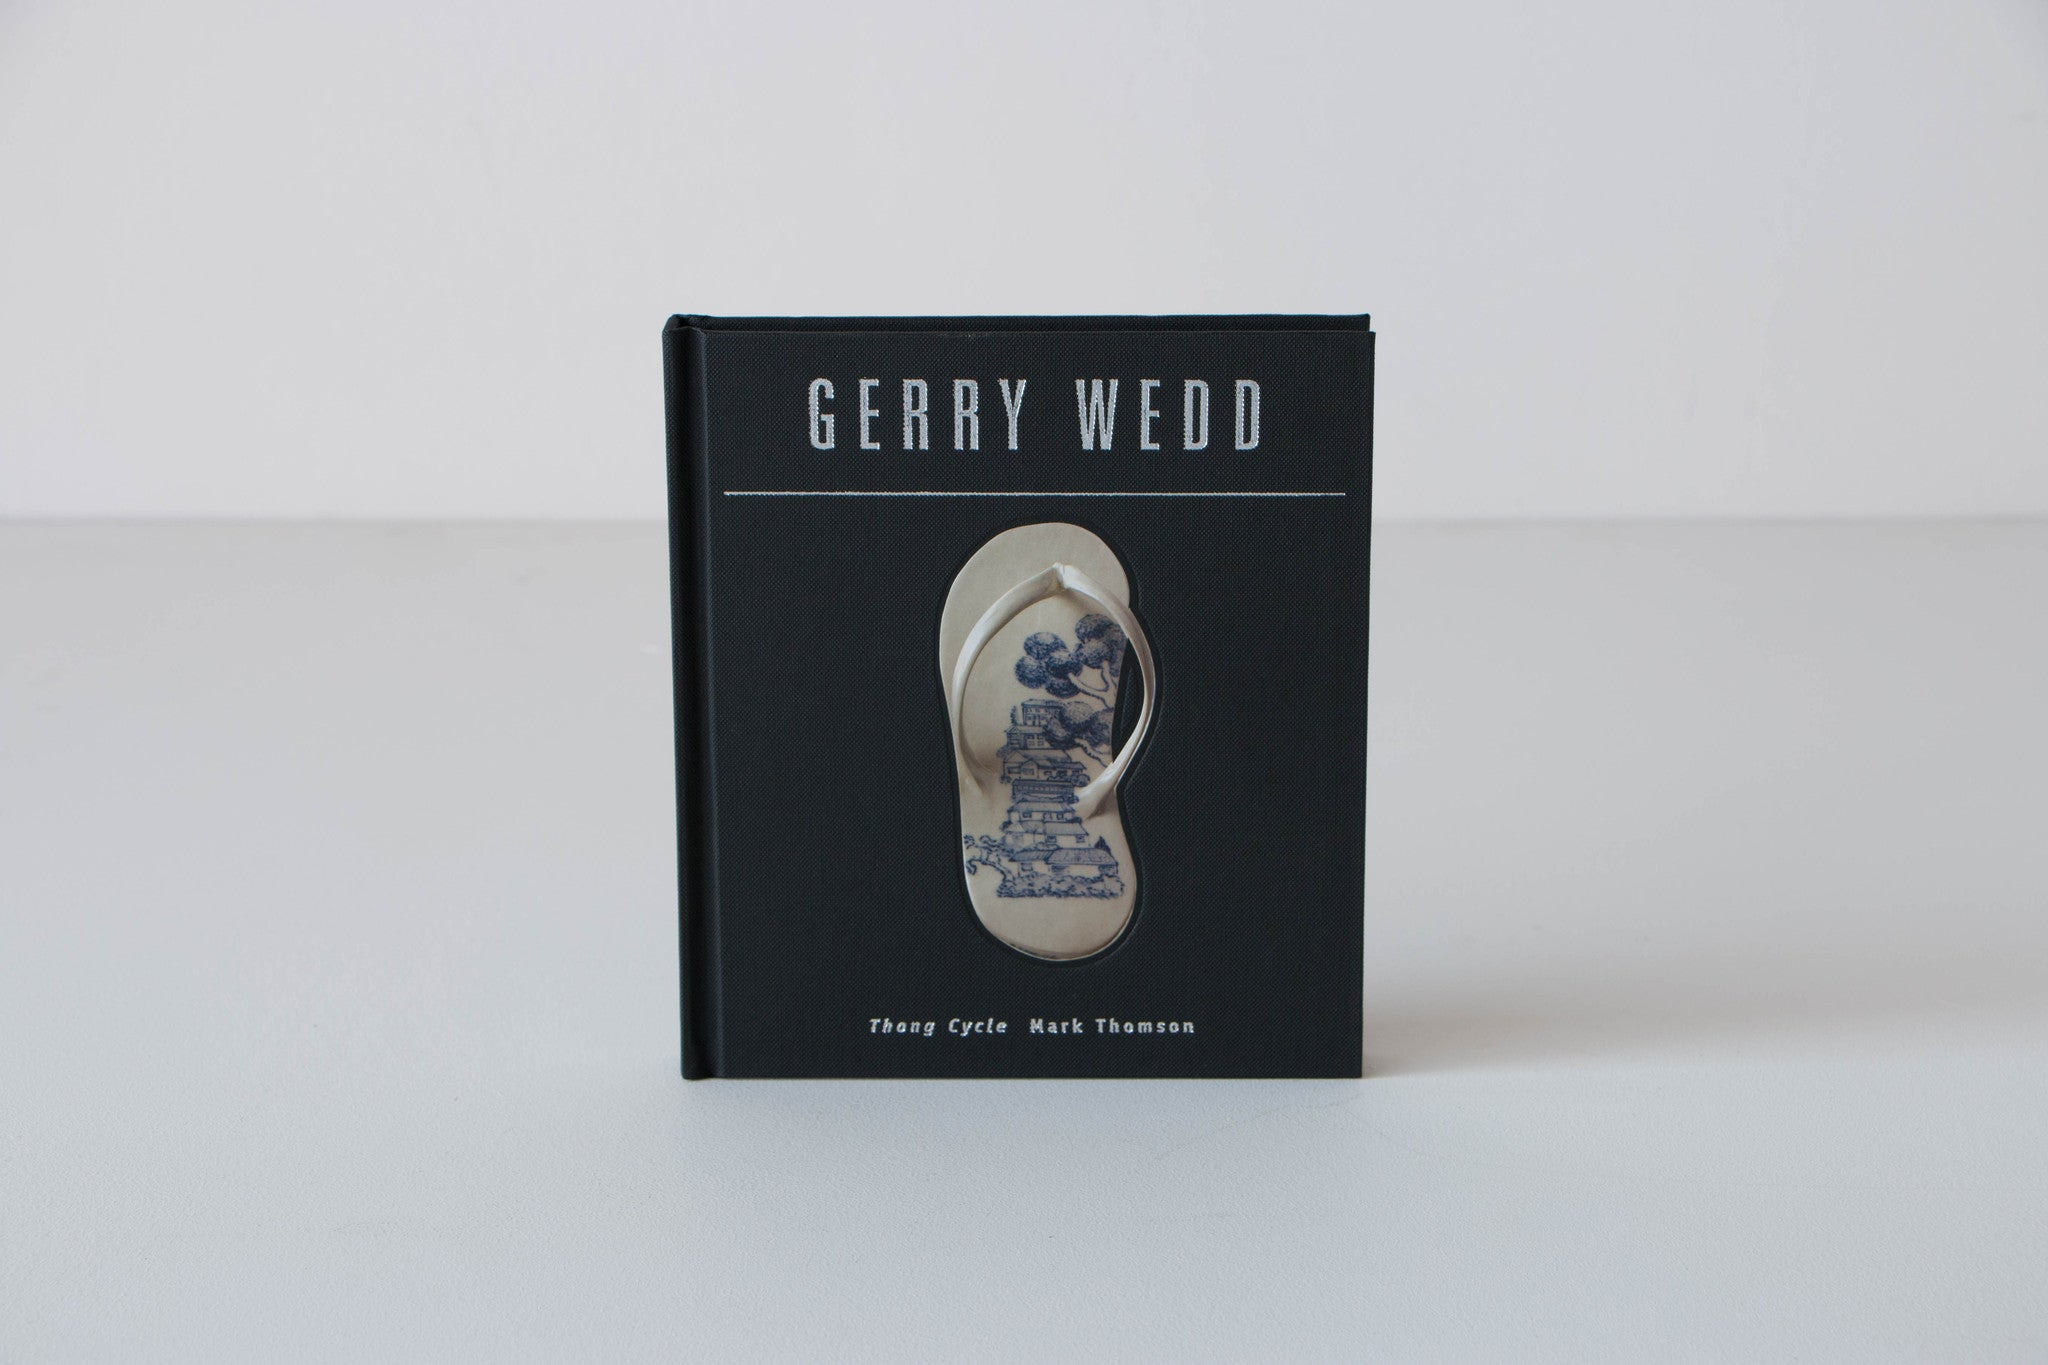 'Thong Cycle' Gerry Wedd